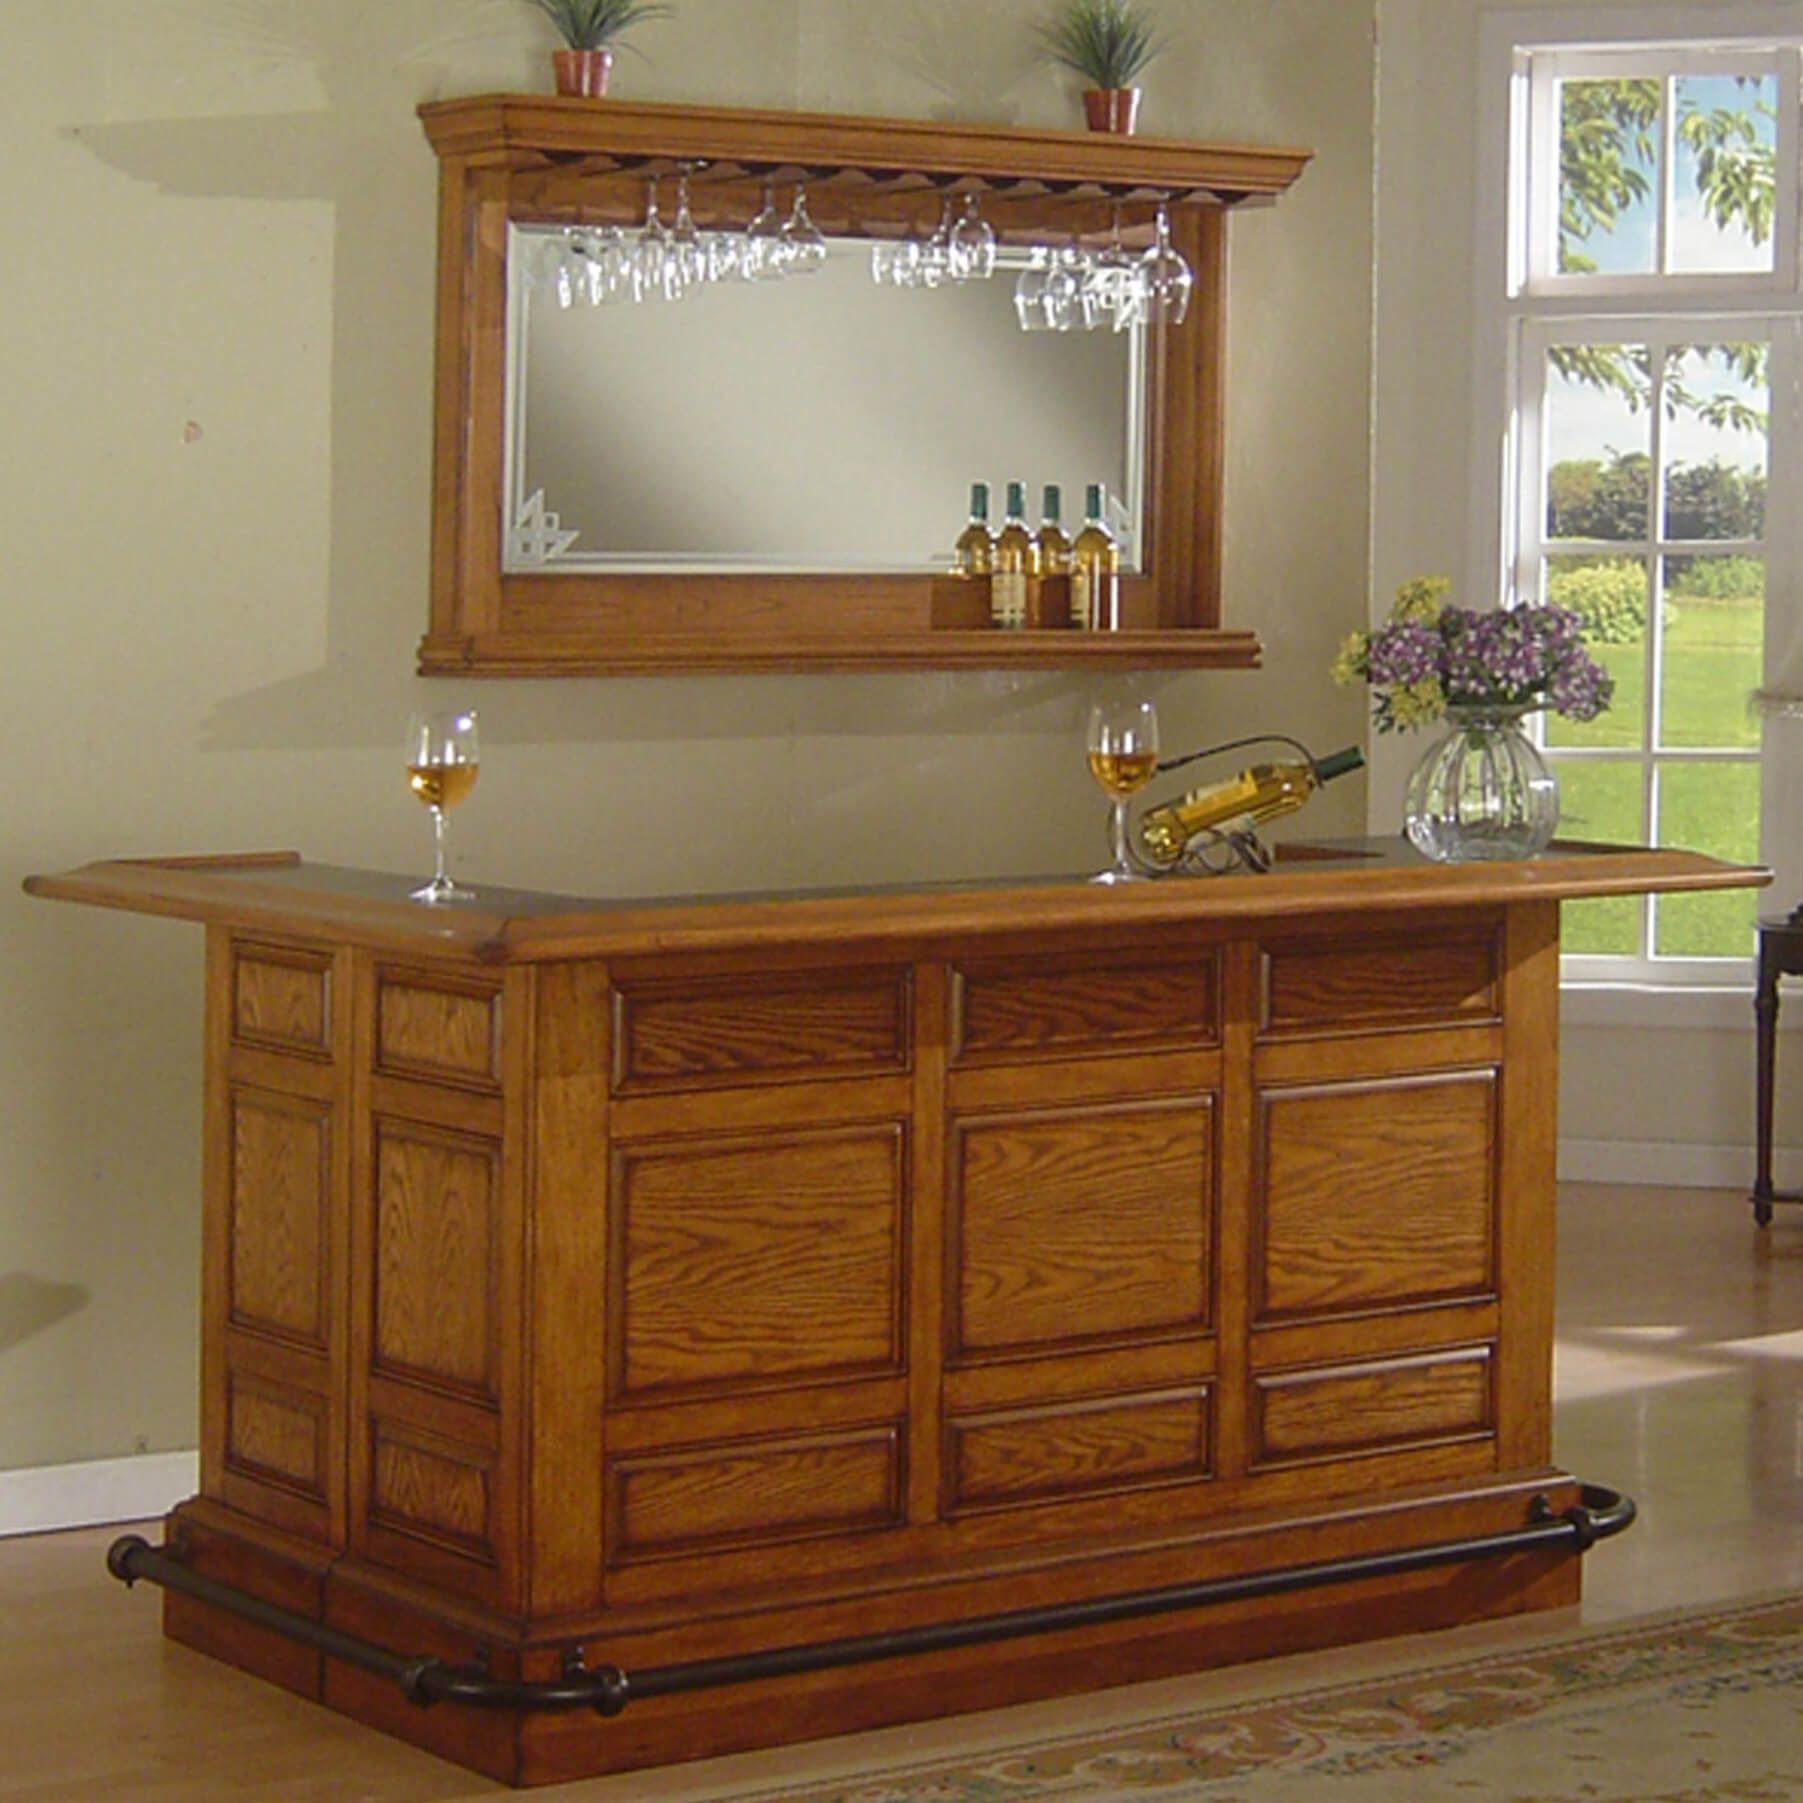 30 top home bar cabinets, sets & wine bars (elegant & fun) | solid